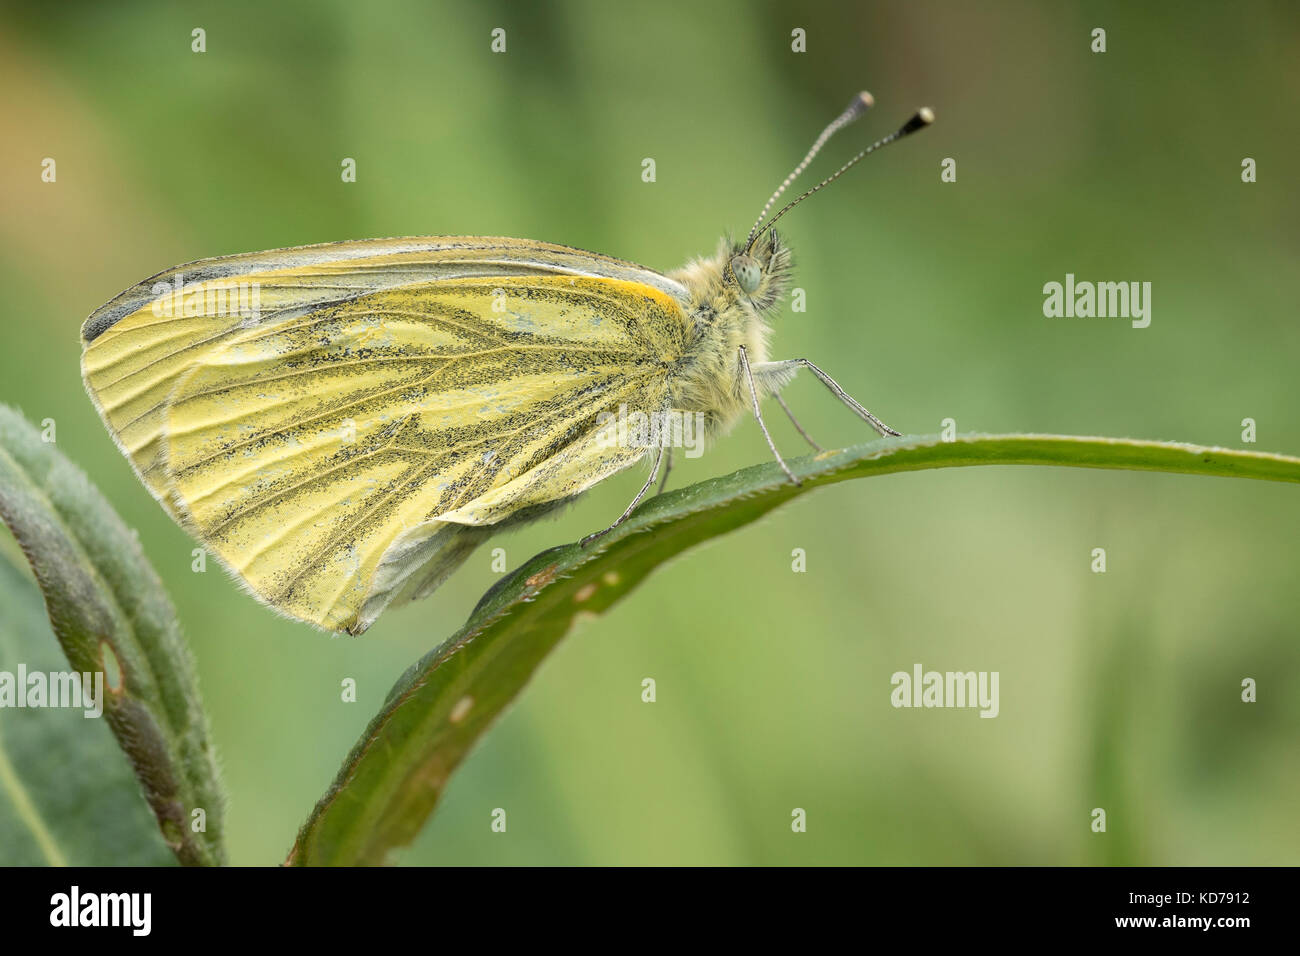 Green Veined White Butterfly (Pieris napi) resting on blade of grass. Tipperary, Ireland - Stock Image